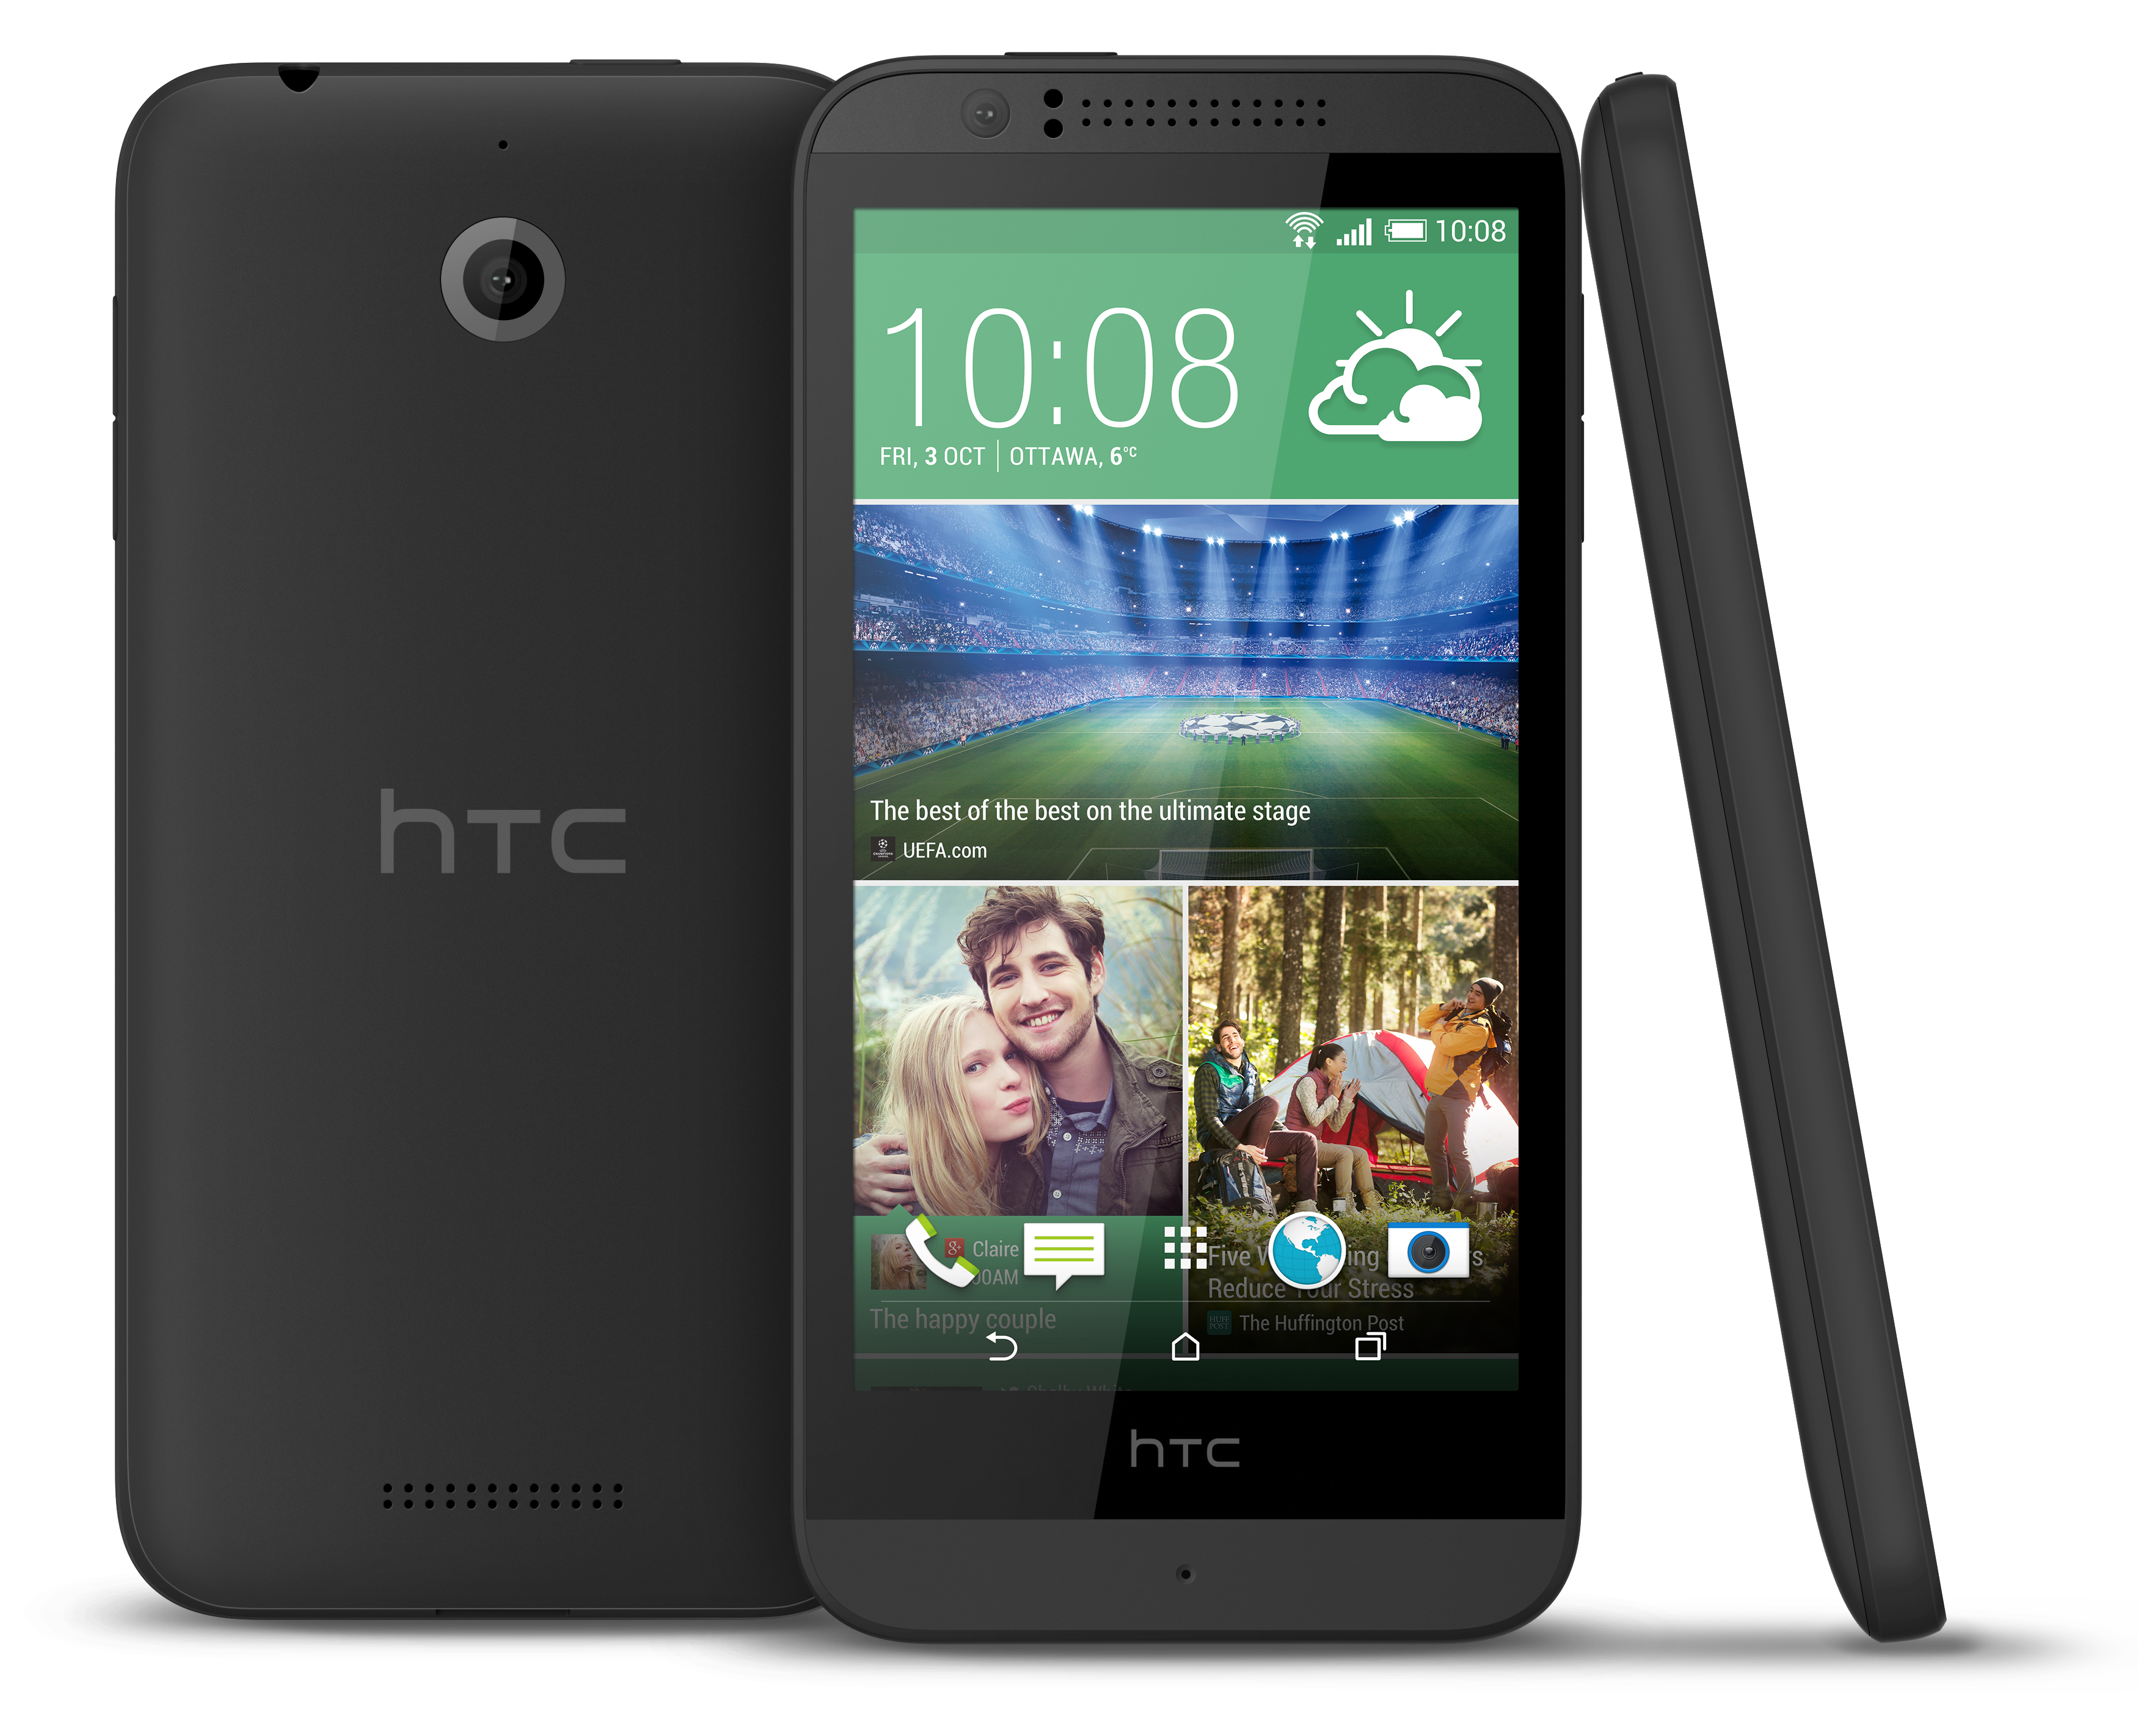 smartphones htc canada english rh htc com HTC Cell Phone 2017 HTC Cell Phones 2018